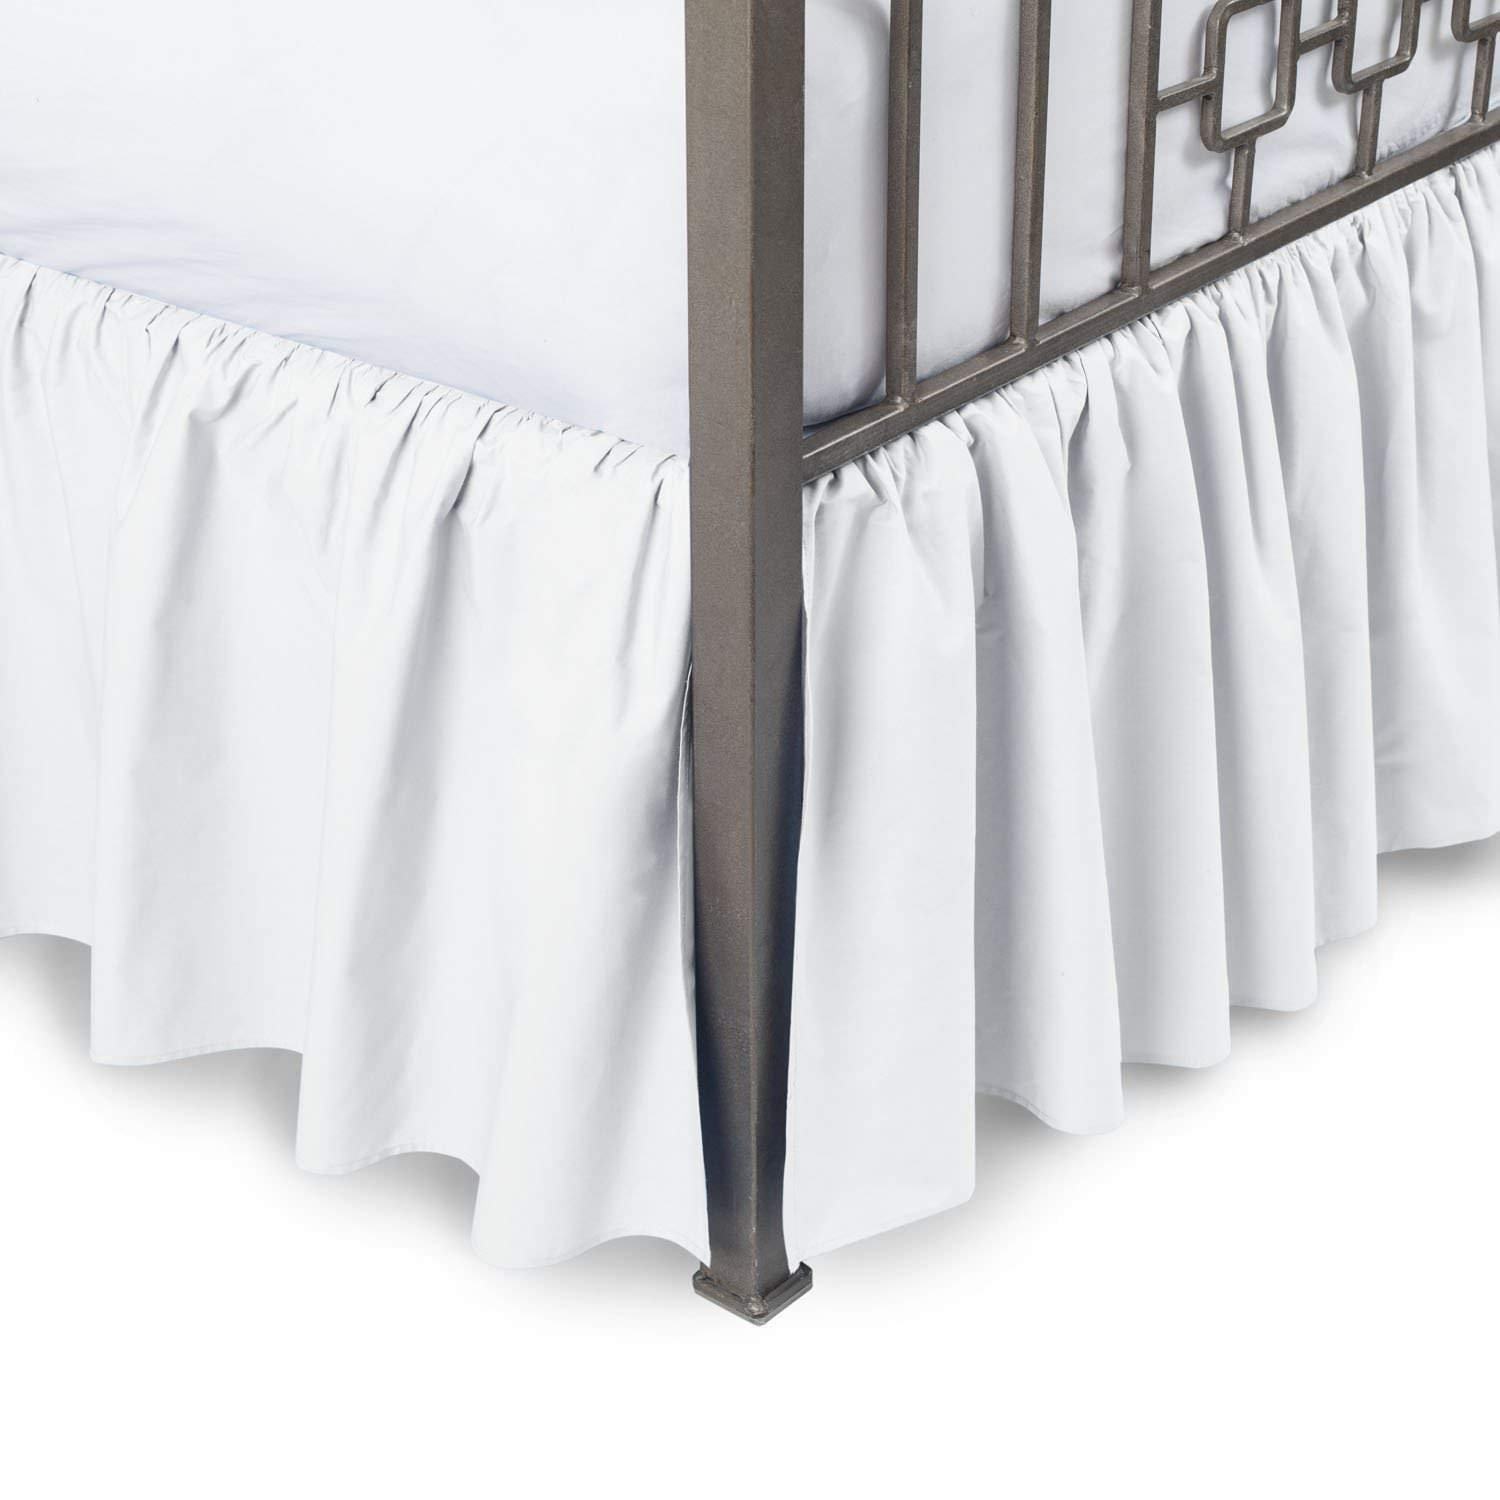 Precious Star Linen 800 Thread Count 1pc Dust Ruffle Bed Skirt Solid Queen Size 21 Inch Drop Length 100% Egyptian Cotton (White)